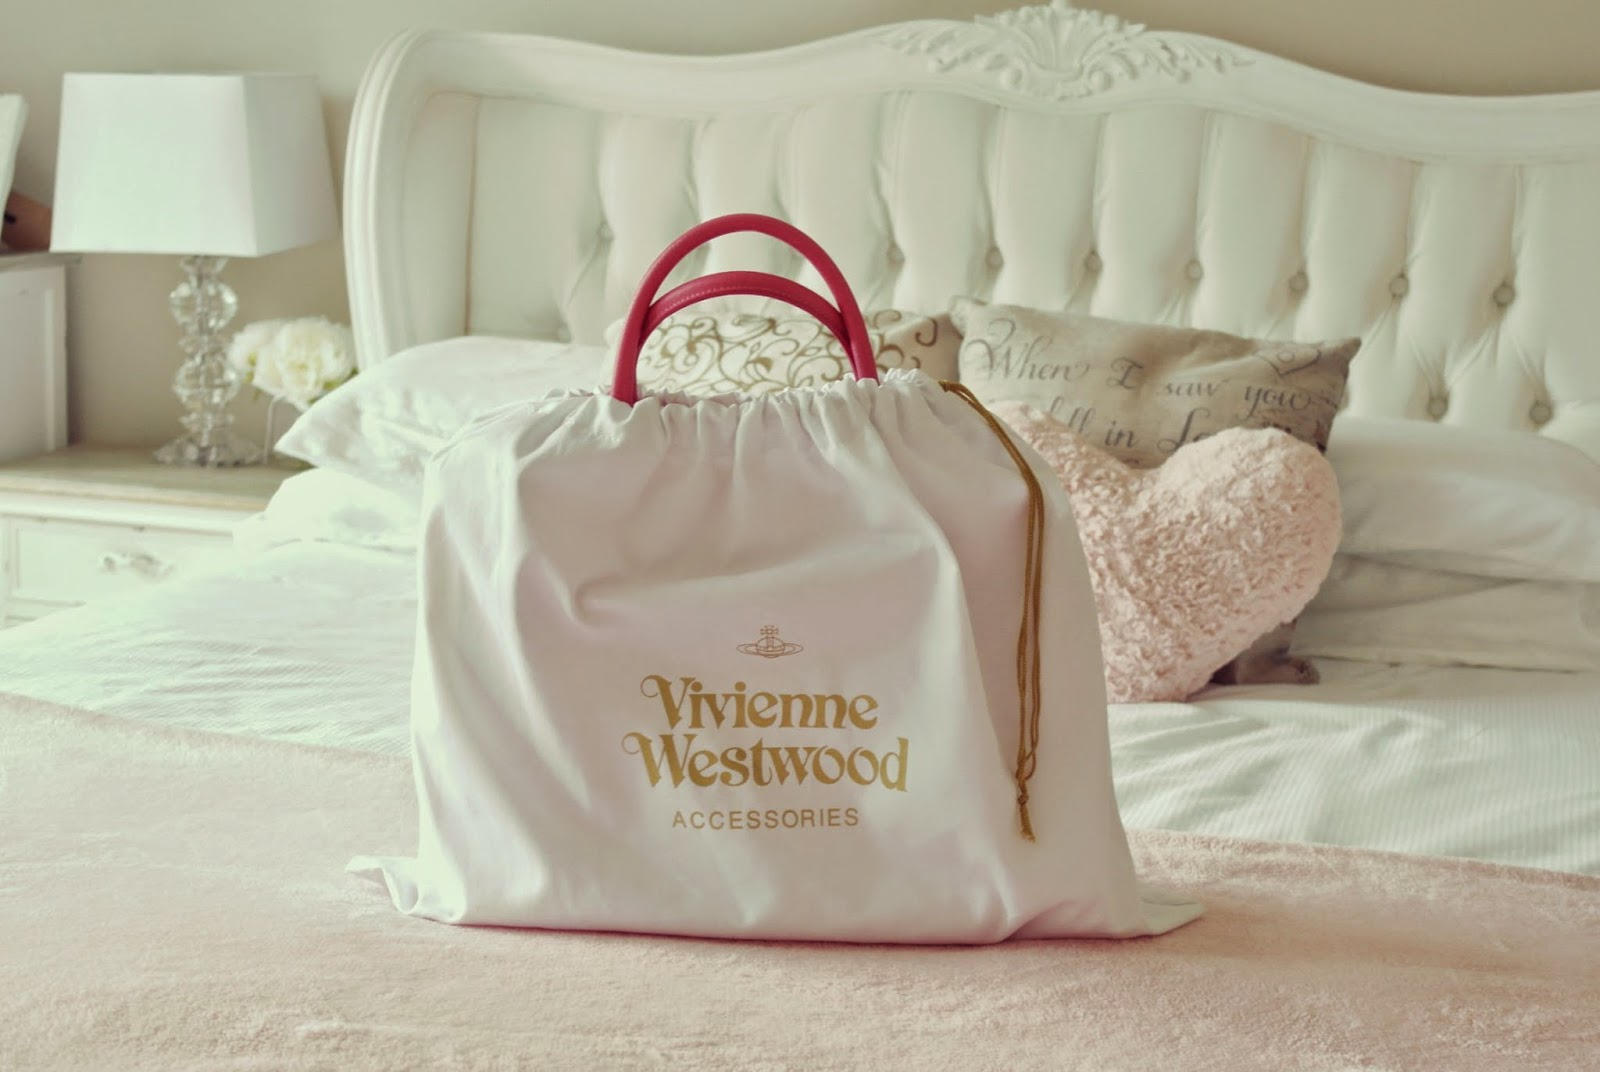 vivienne westwood bag review